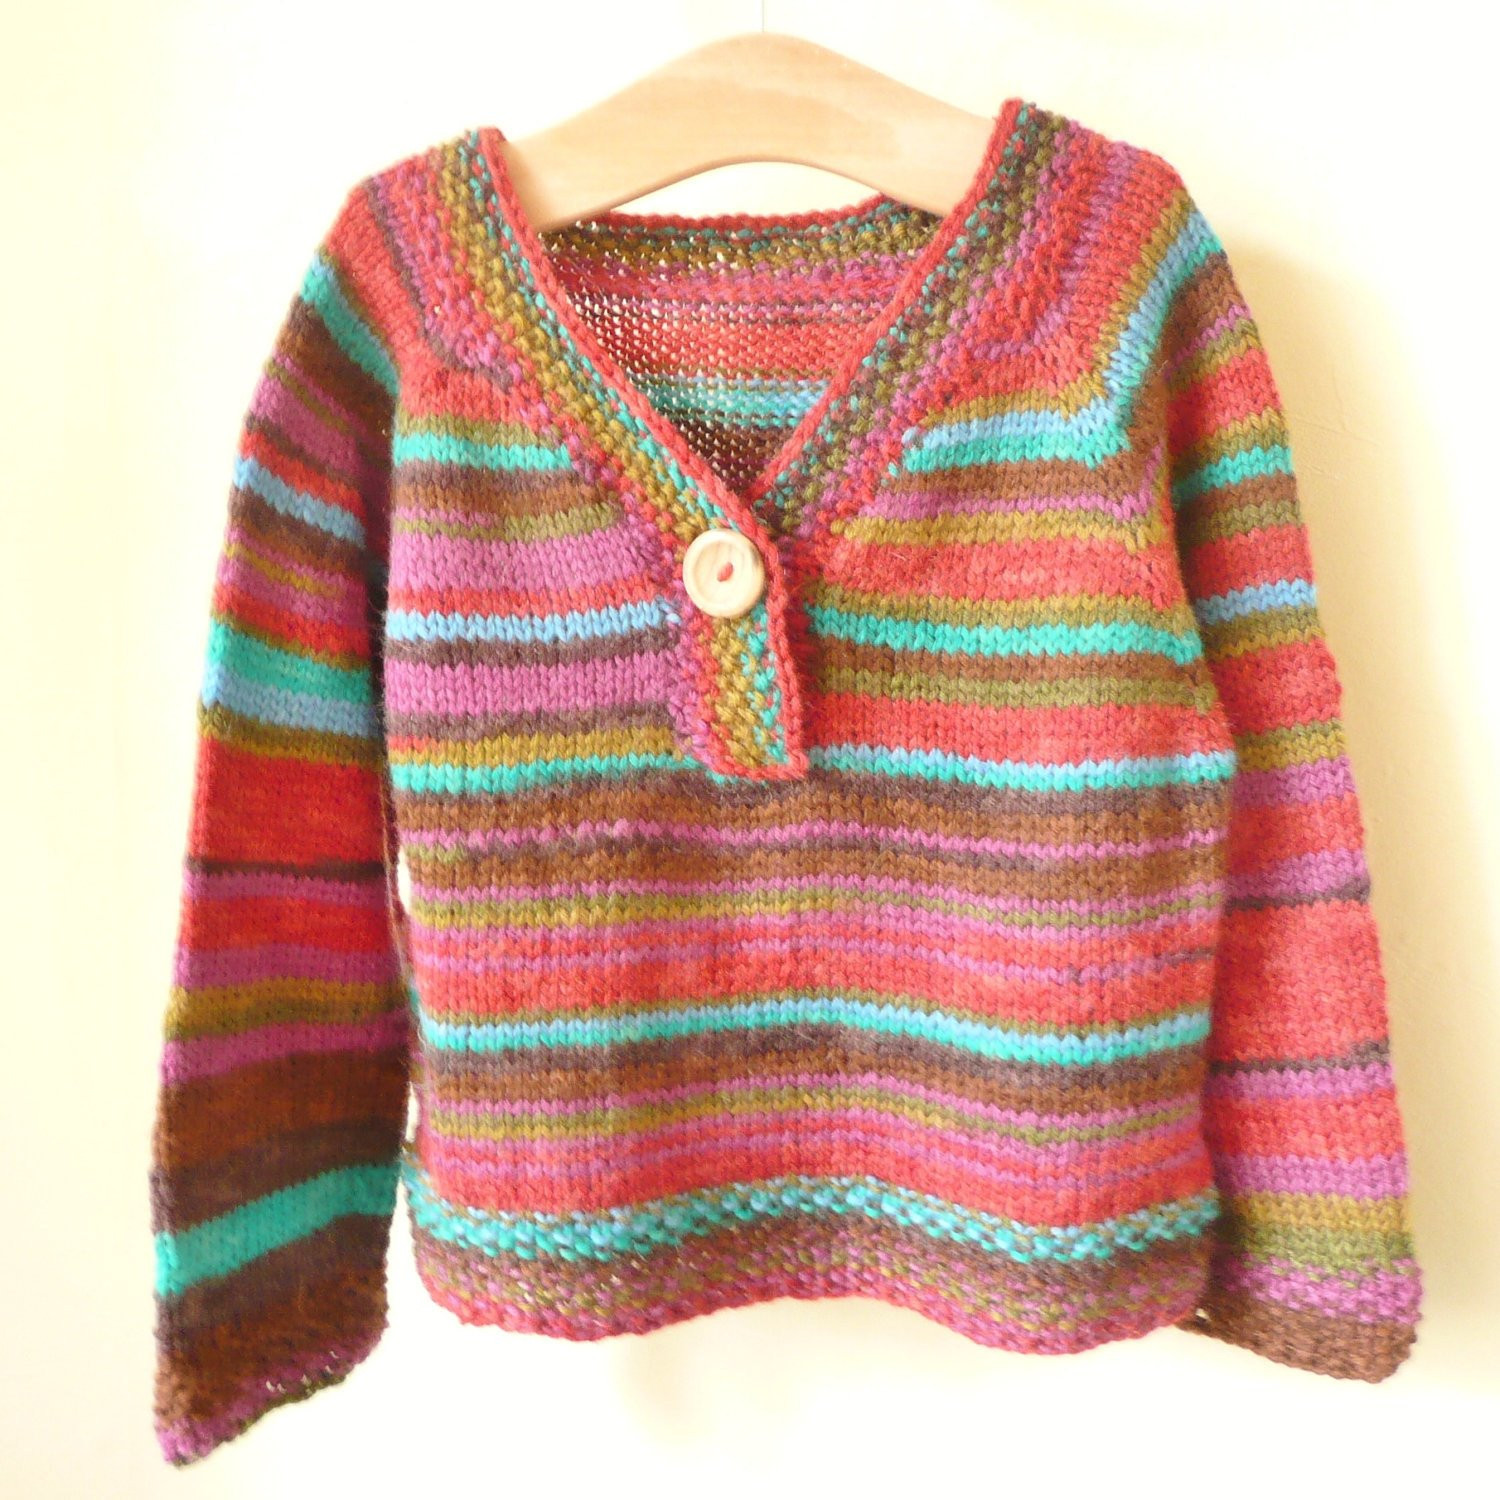 Knitting Patterns For Sweaters For Children